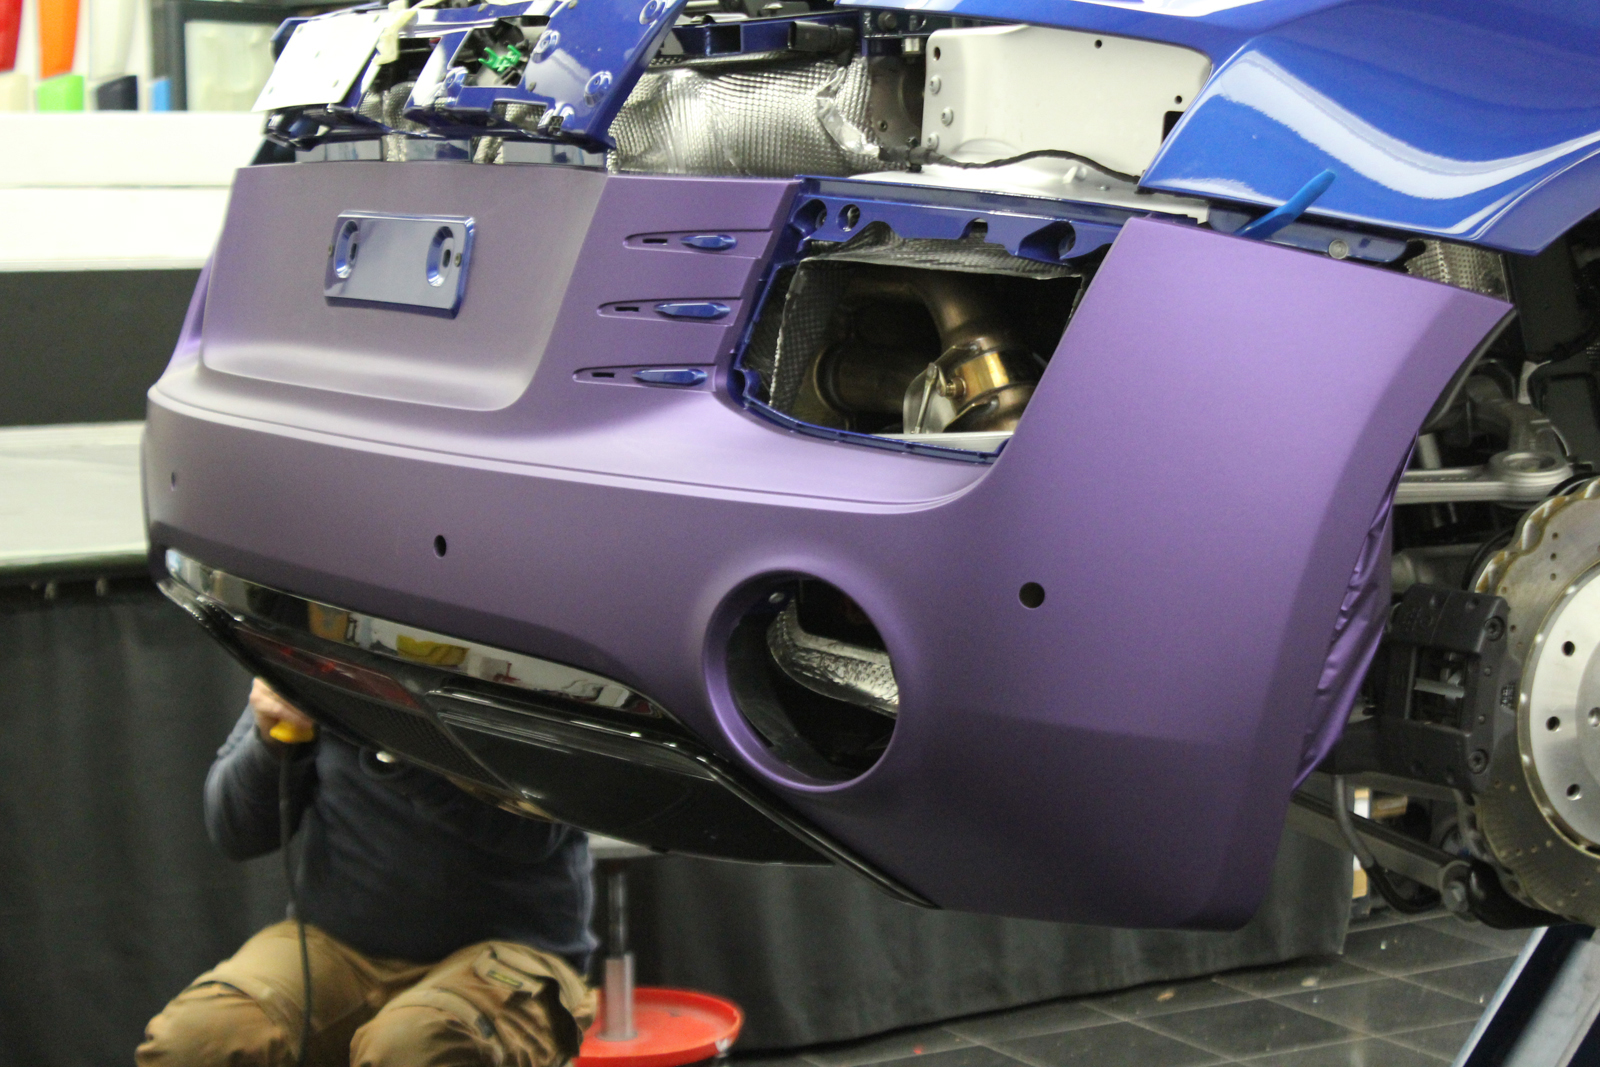 AUDI_R8_PURPLE_MATT_METALLIC_CAR-WRAPPING_01